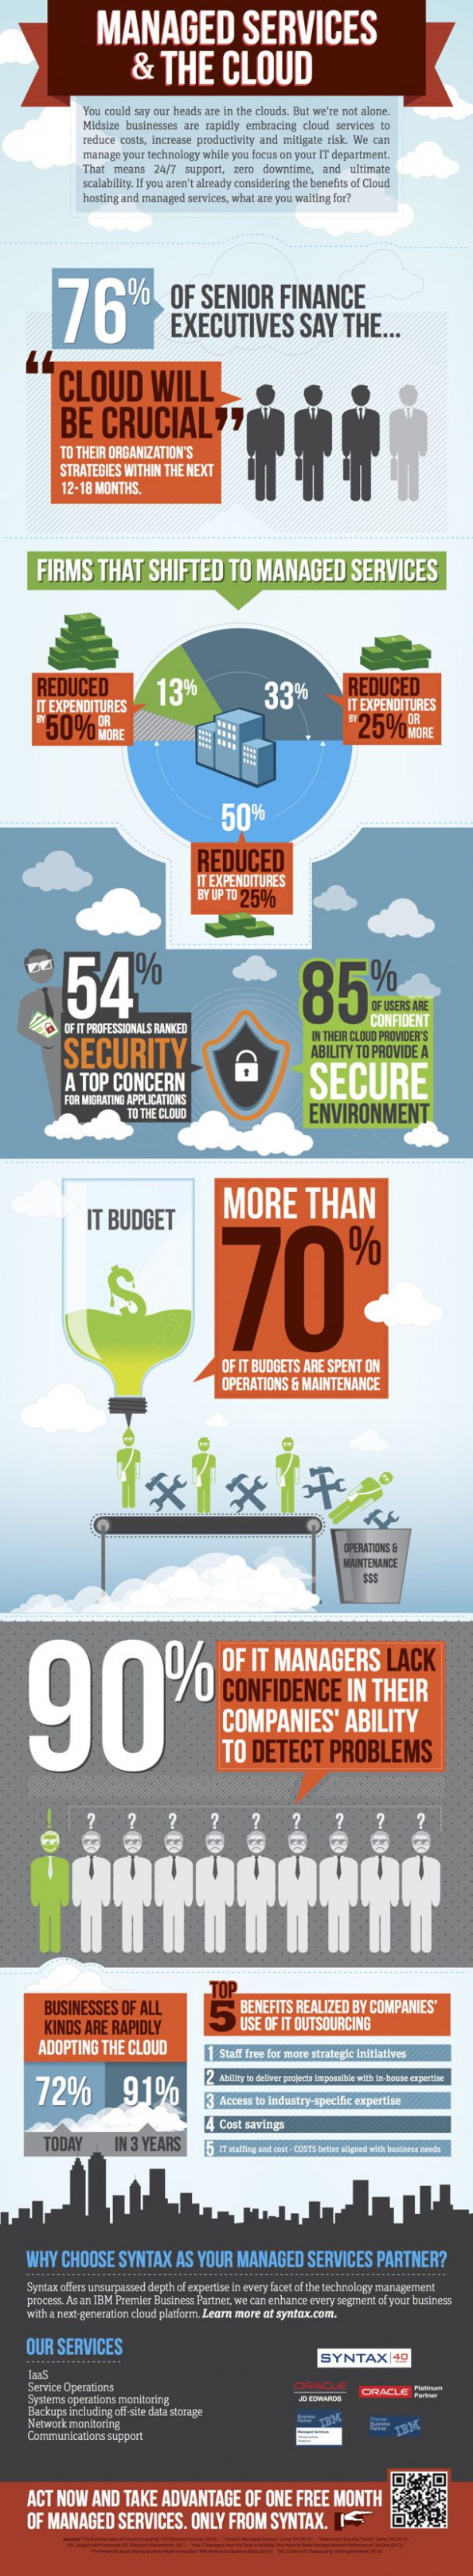 Managed Services & The Cloud Infographic